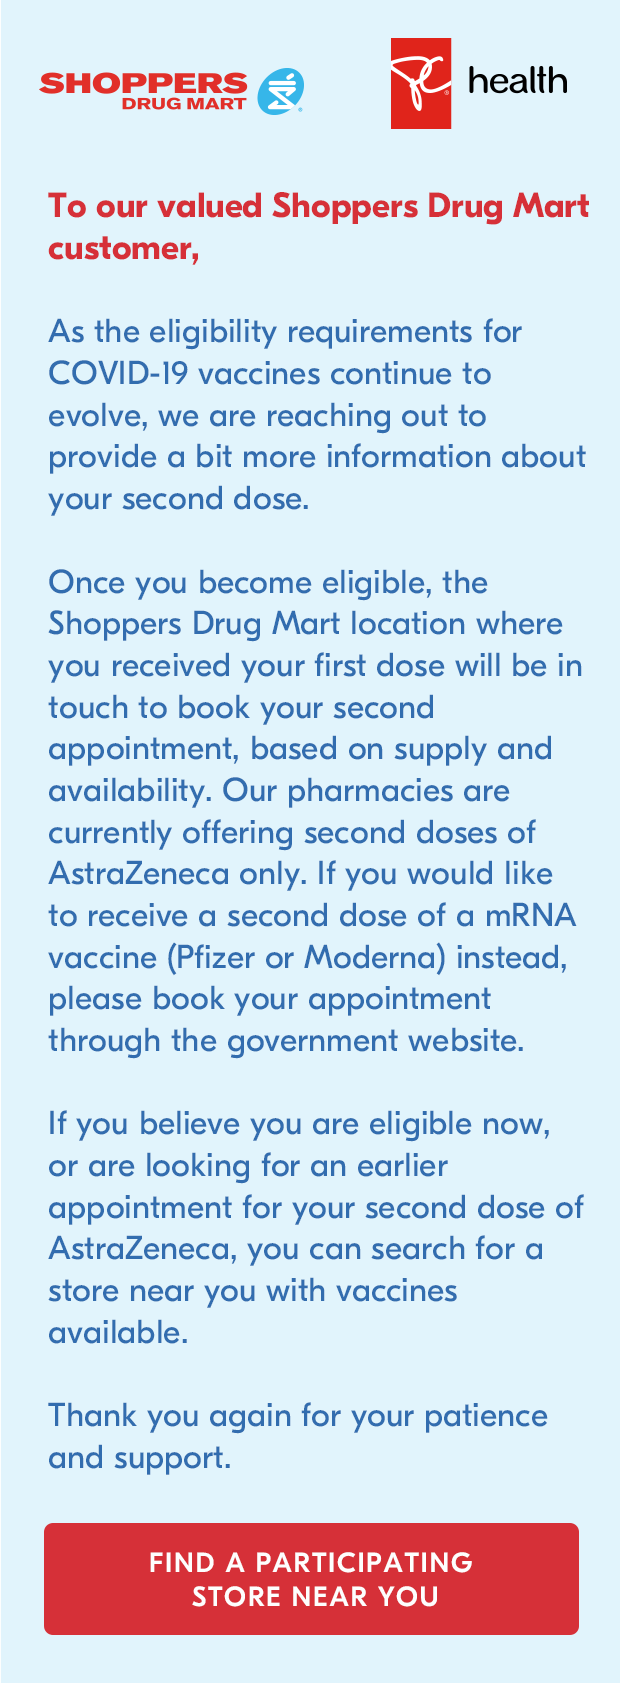 As eligibility requirements for COVID-19 vaccines continue to evolve, we are reaching out to provide a bit more information about your second dose.